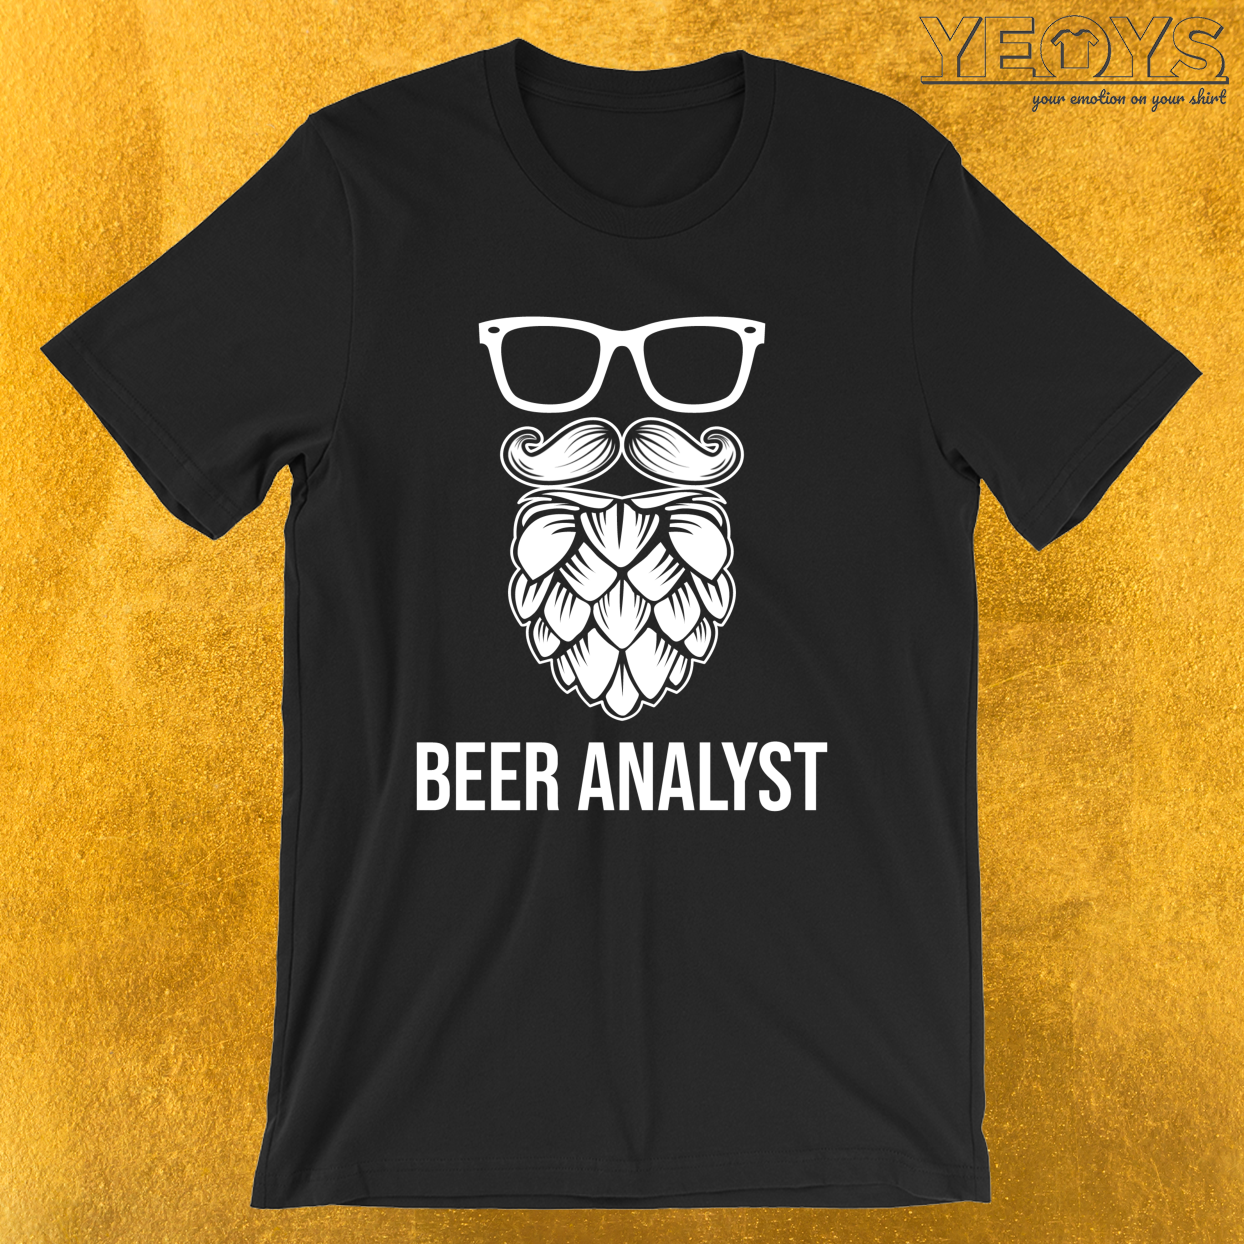 Beer Analyst – Craft Beer Tee